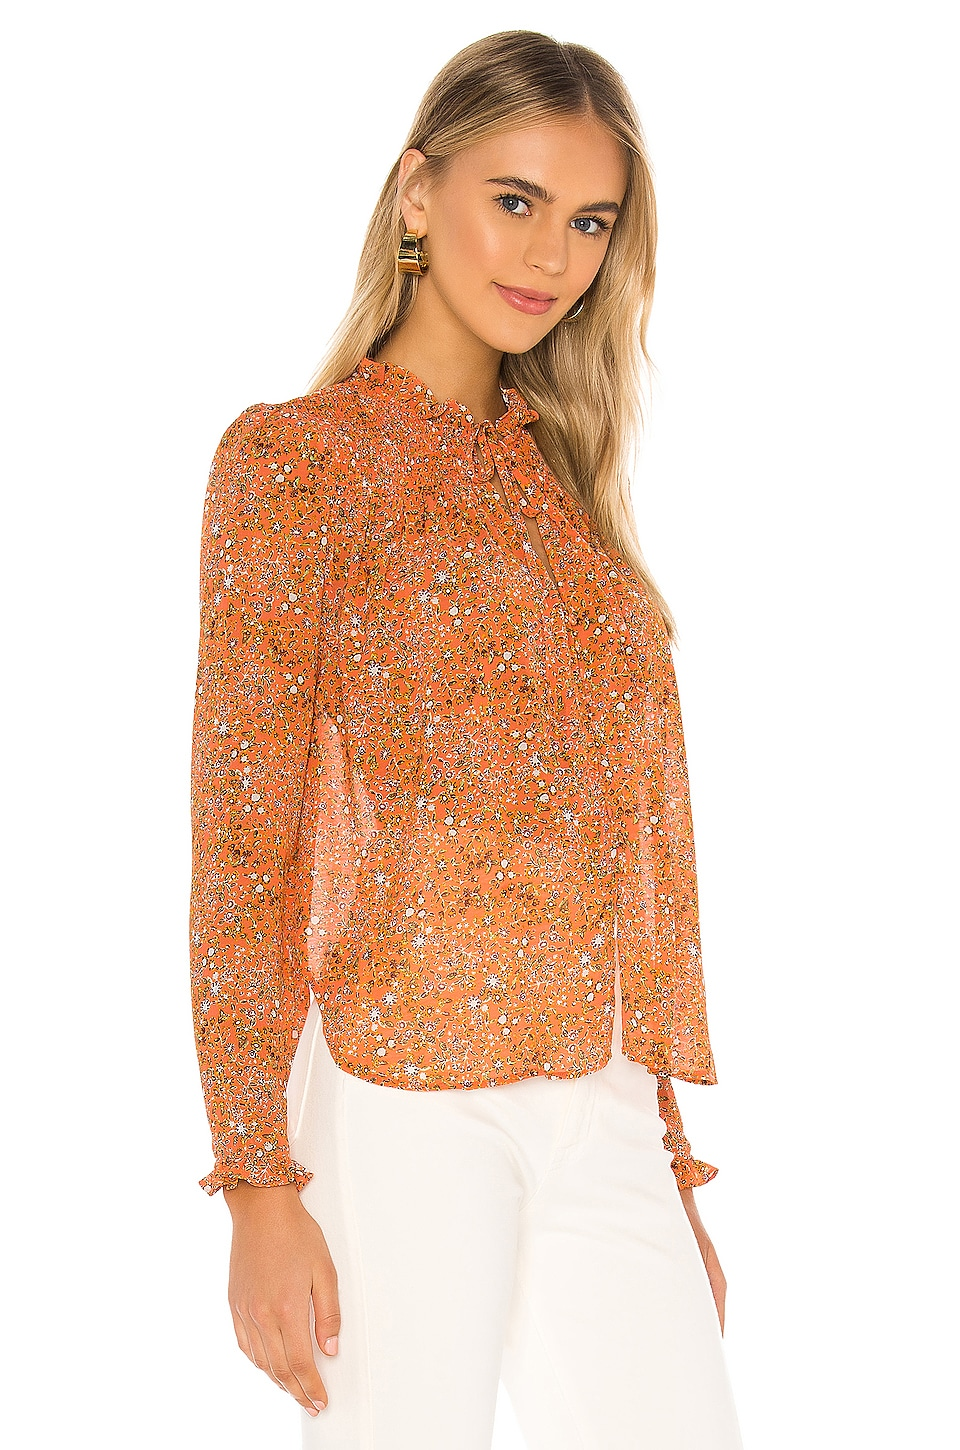 X REVOLVE Lela Blouse, view 3, click to view large image.